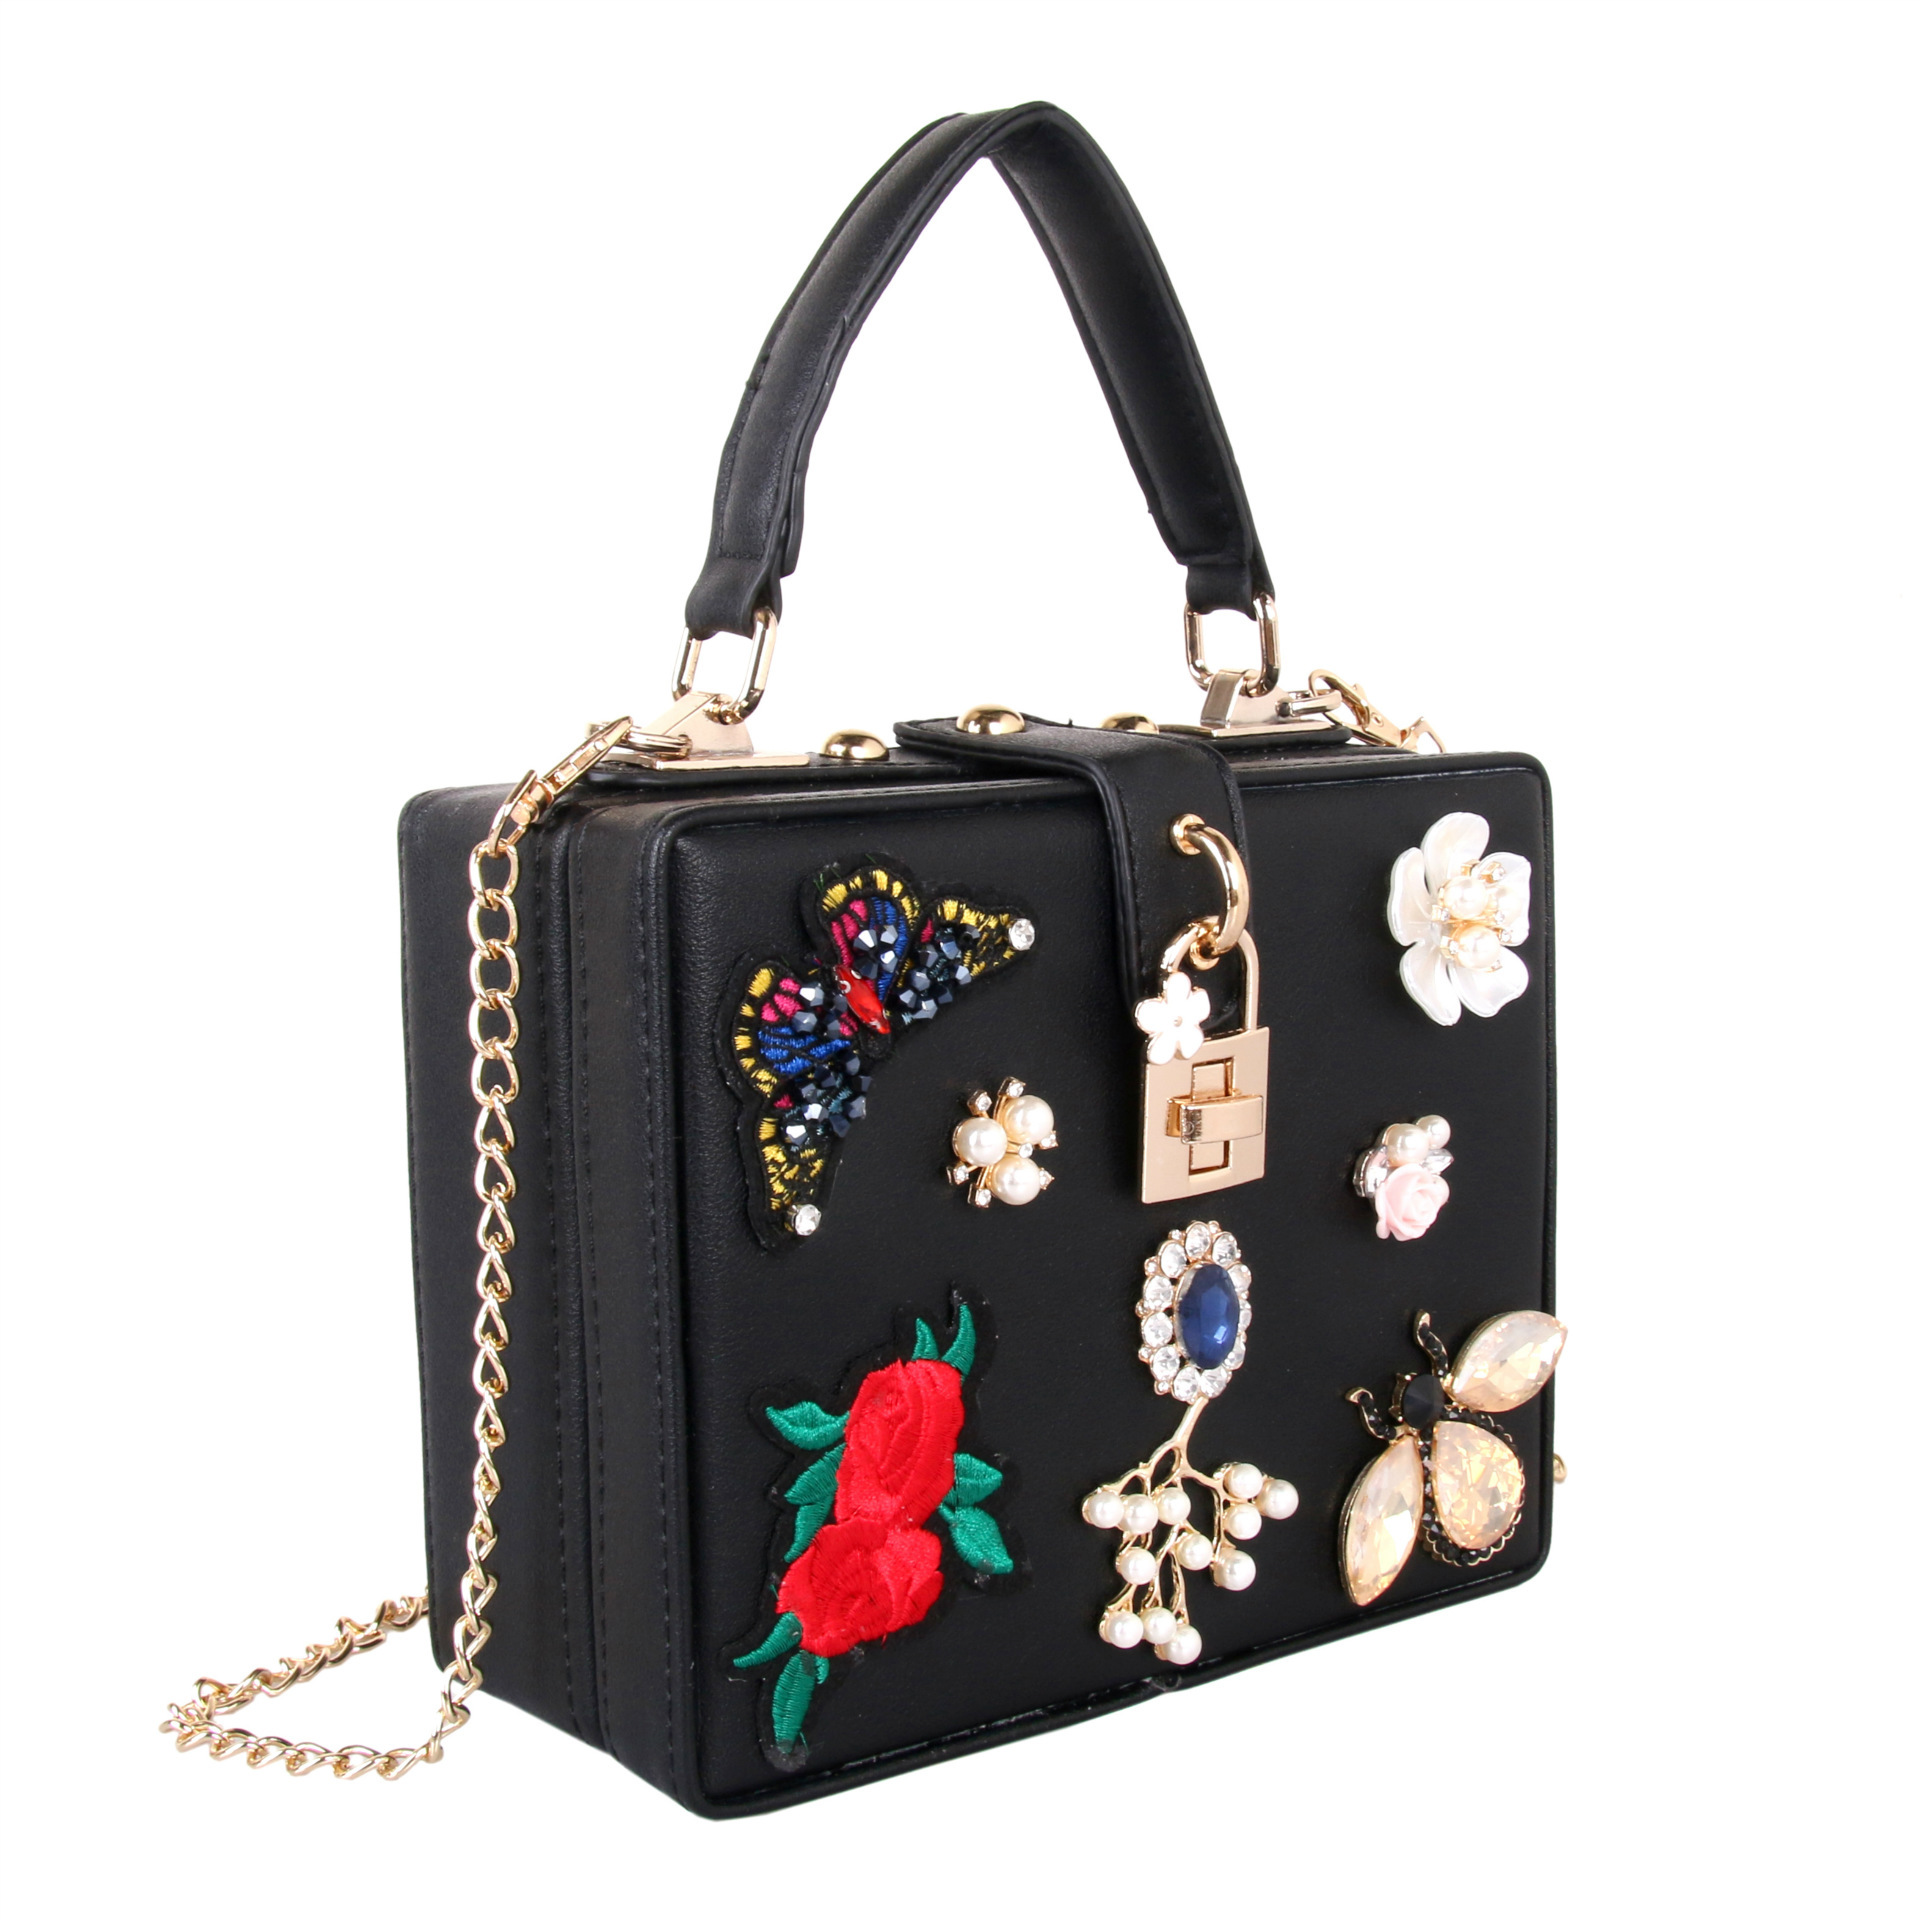 Fashion bags for girls 83